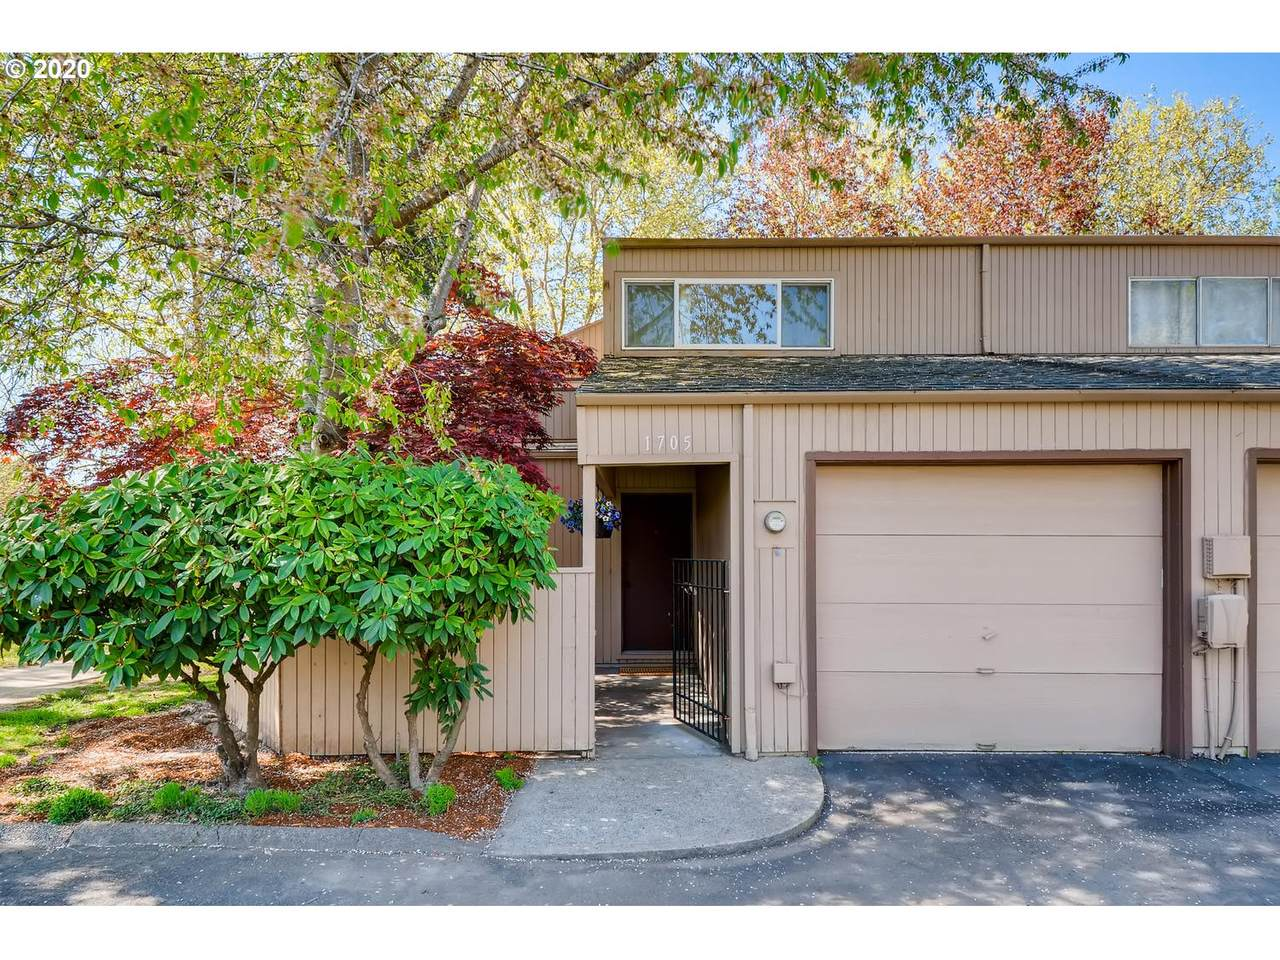 1705 Rolling Hill Dr - Photo 1